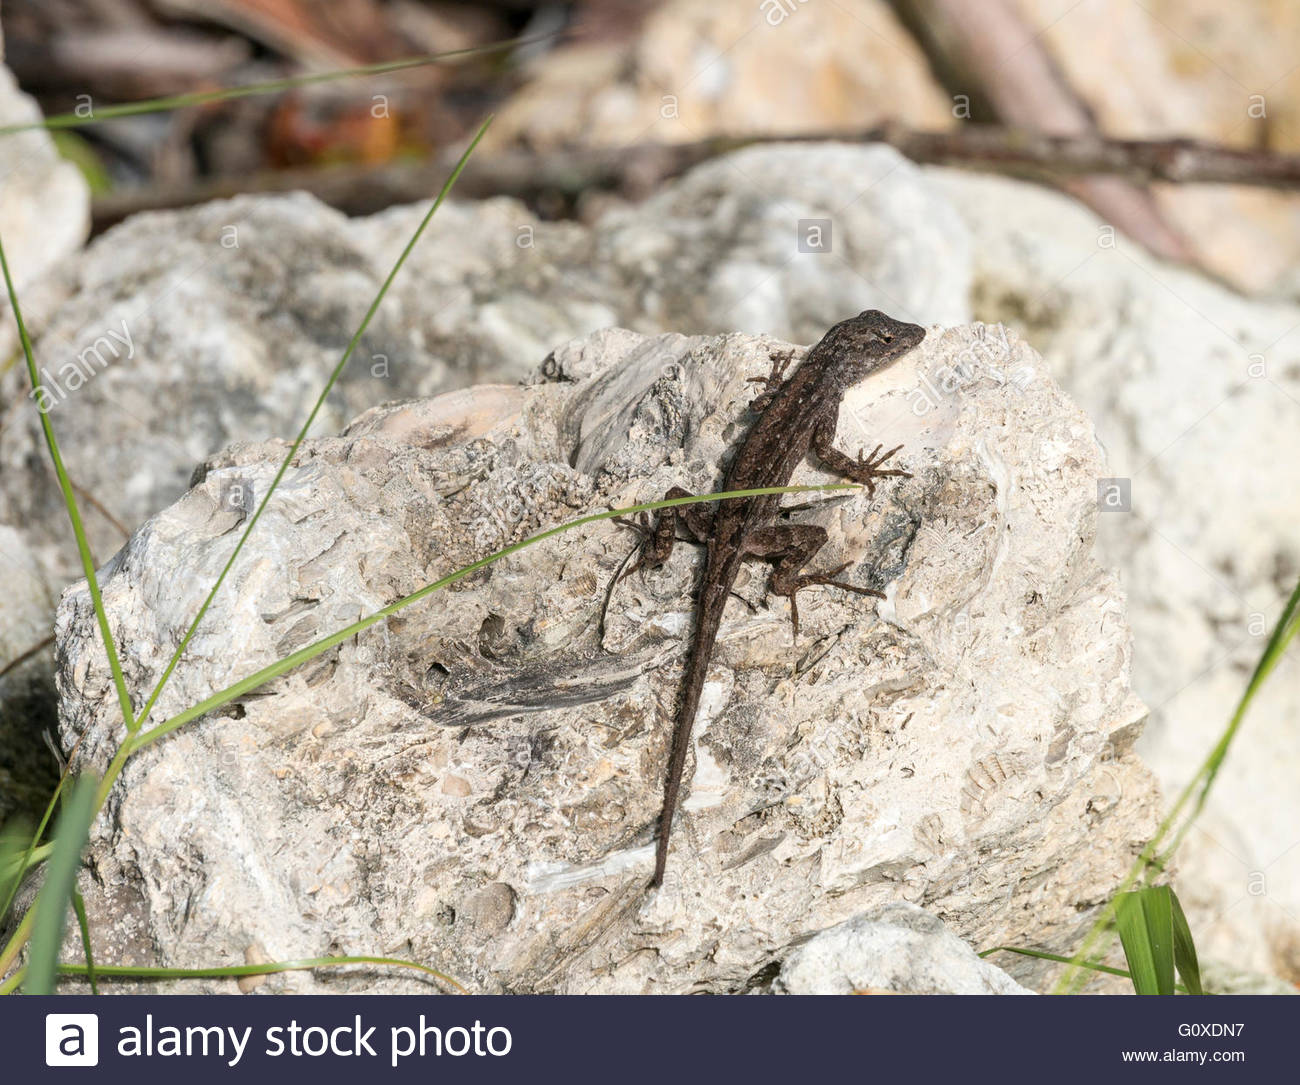 A Brown Anole pauses on a rock at Ding Darling National Wildlife Refuge in Sanibel, Florida - Stock Image